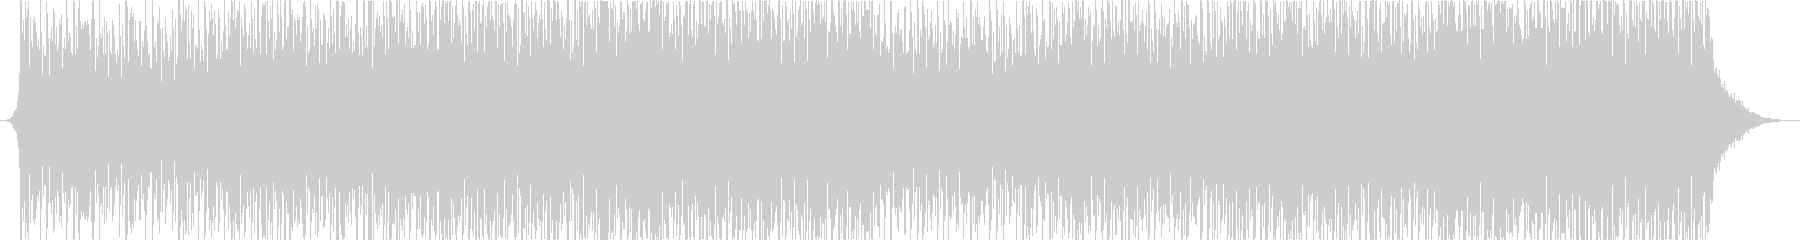 Inspiring ambient house music's unreproduced waveform